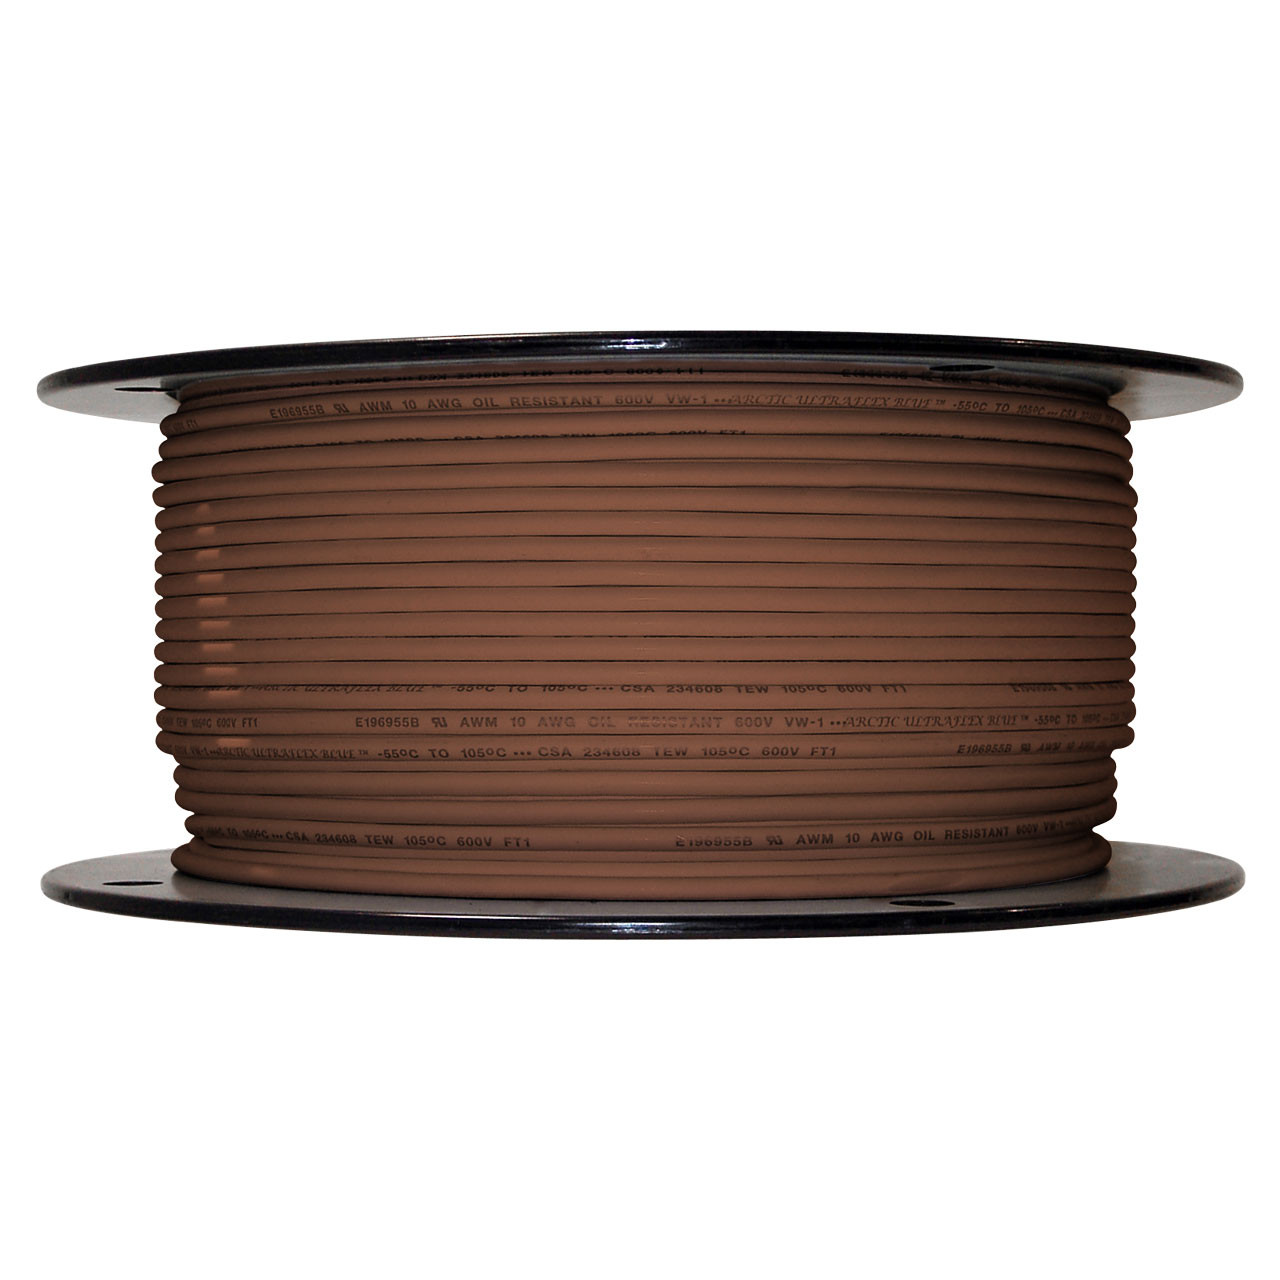 Arctic Ultraflex Blue Single Conductor Wire 100% copper tinned fine strand, 600v applications, 10 AWG Brown, 500 foot spool